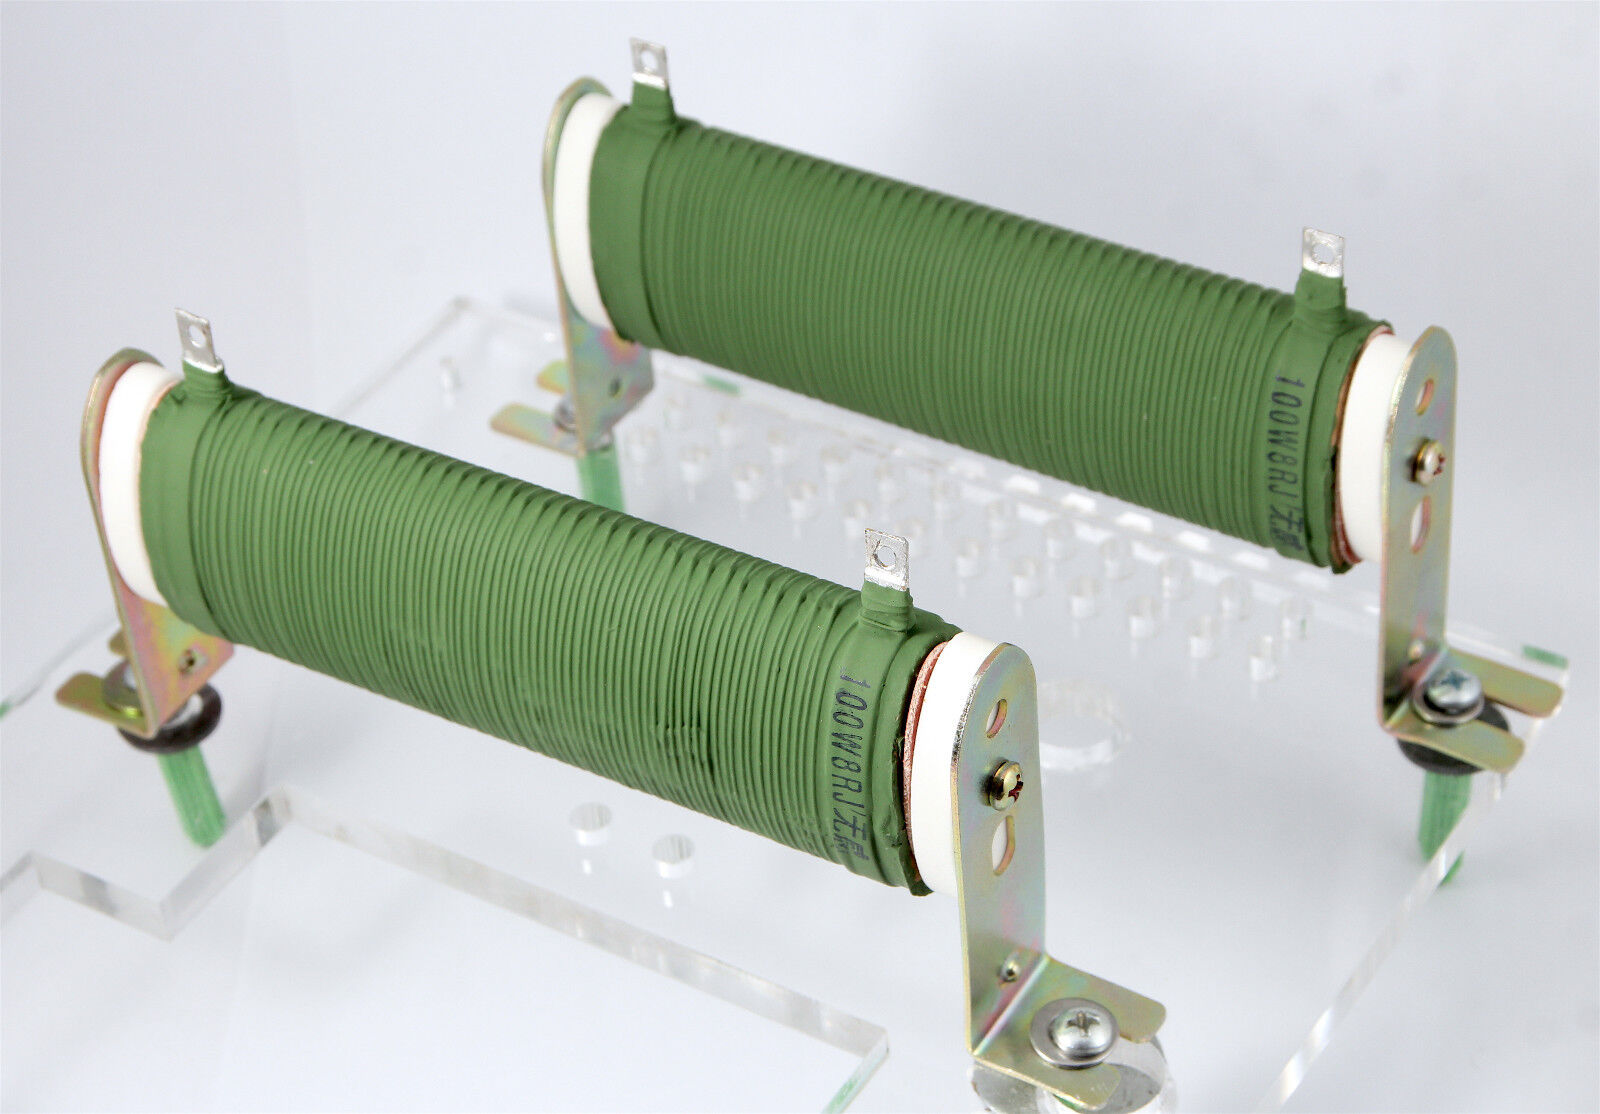 100W 6 OHM Non-inductive Resistor Power Amplifier Test Dummy Load.